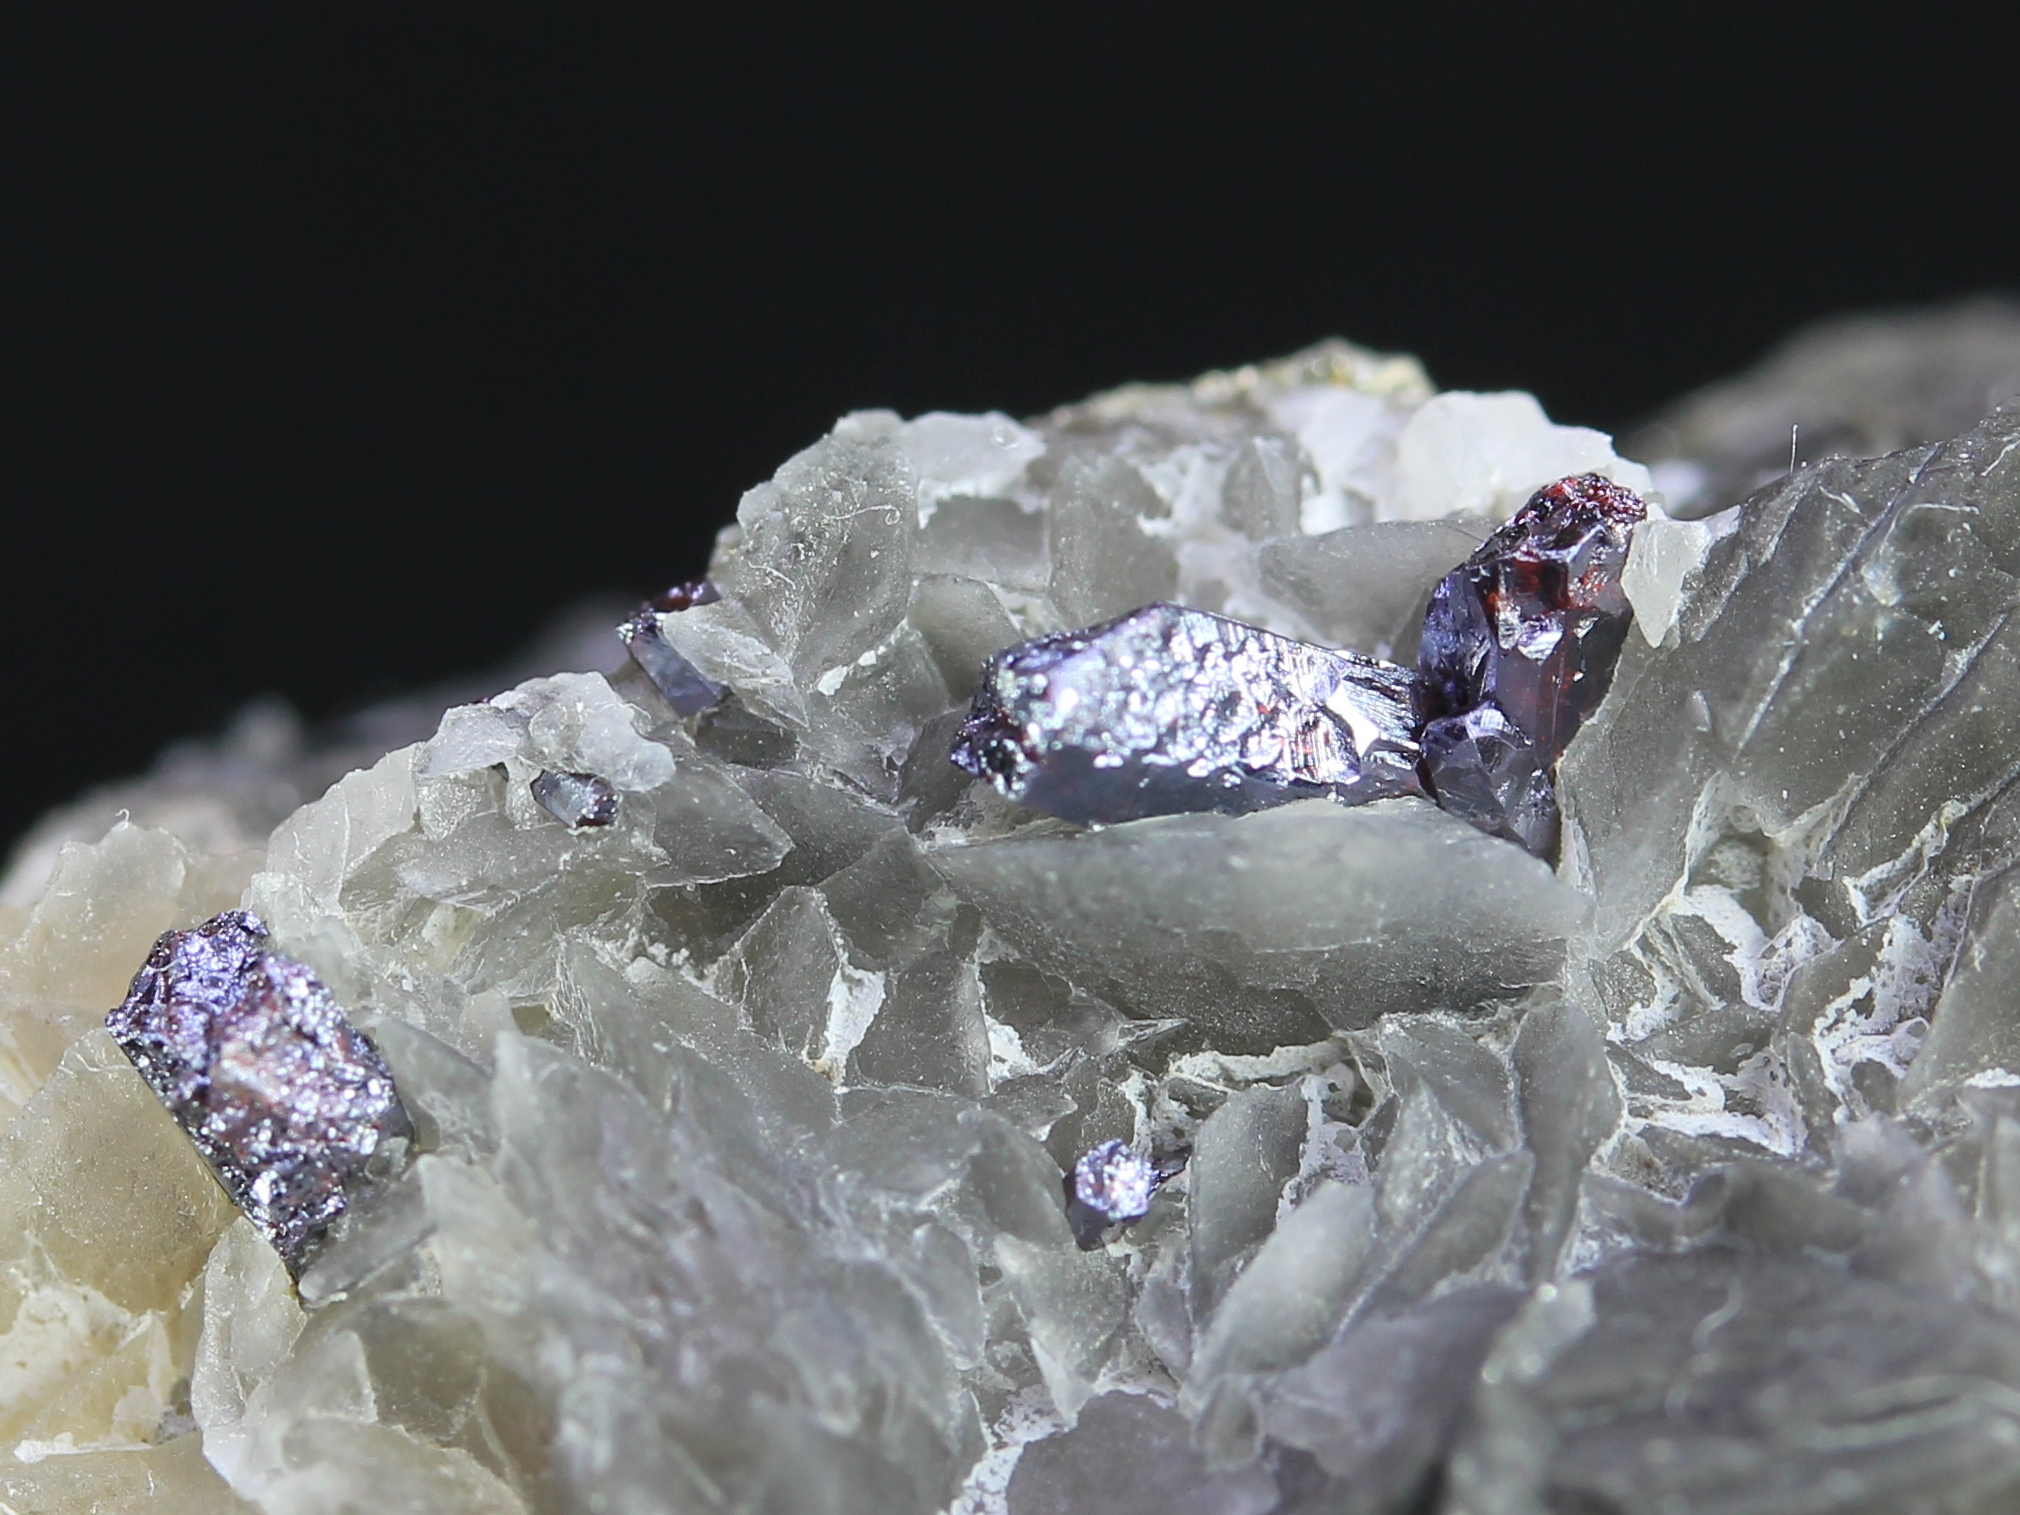 Proustite crystals on a calcite layer